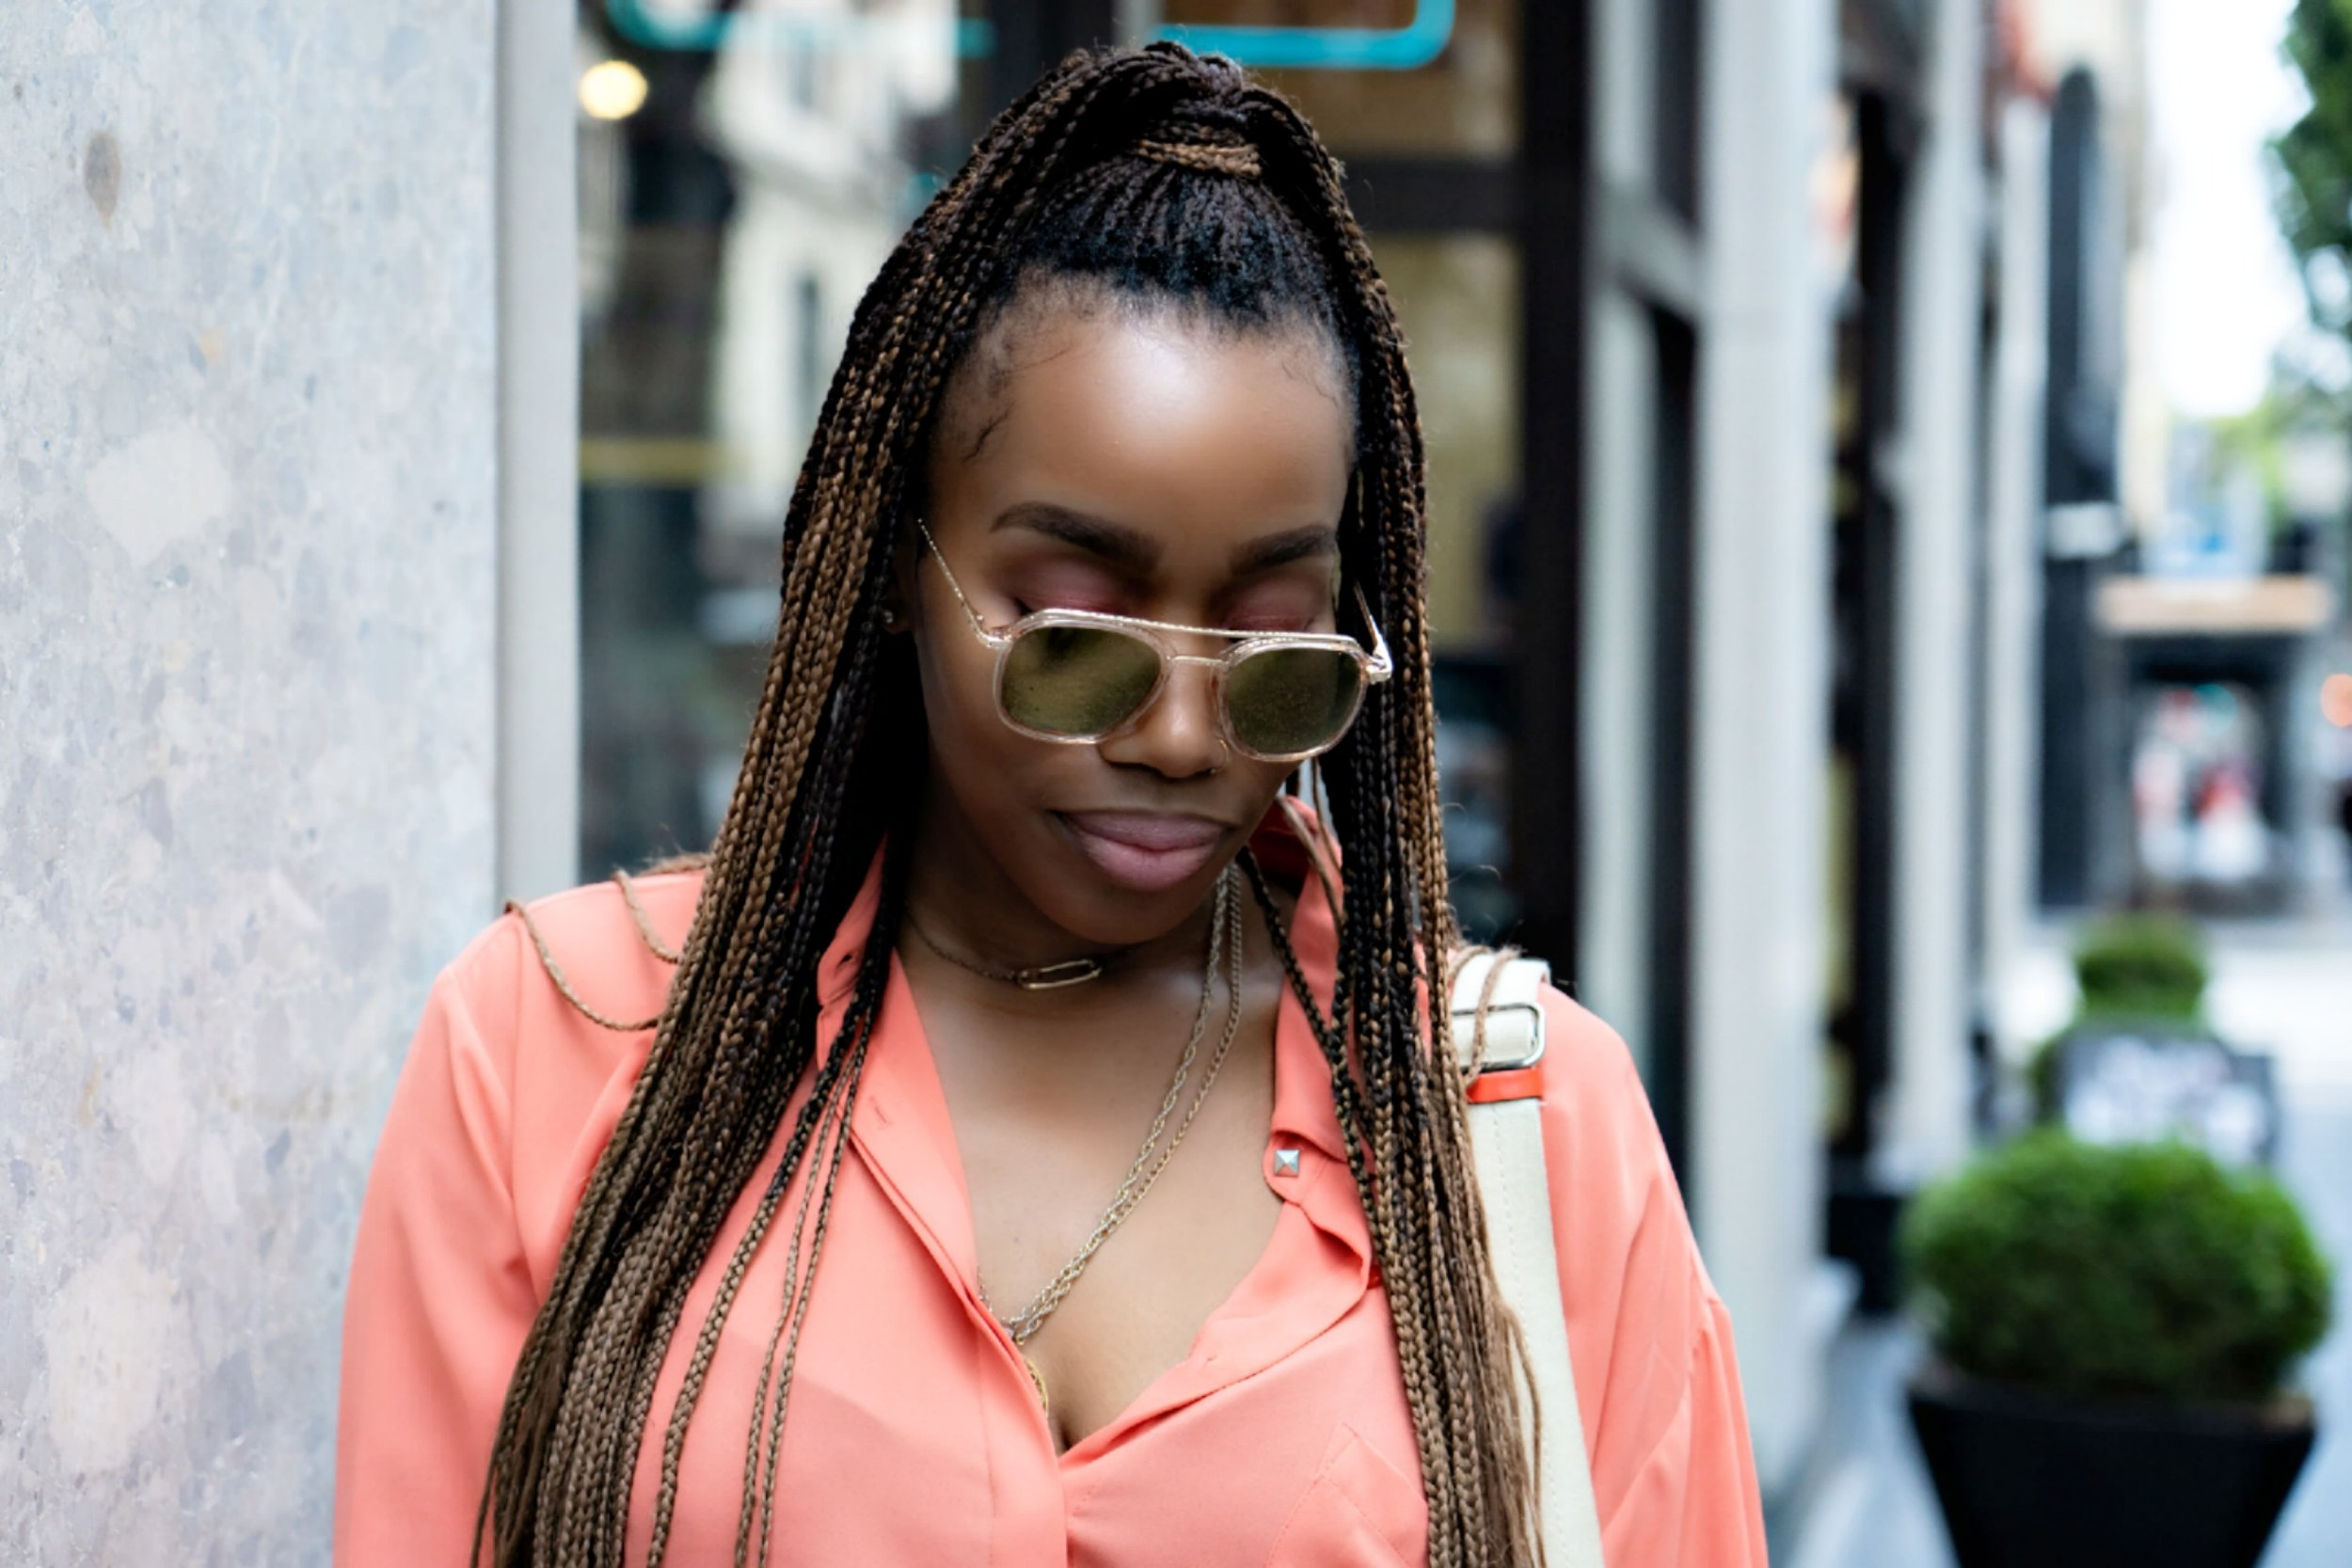 spring-fashion-blouse-sunglasses-black-girl-magic-fashion-blogger-dtla-braids-walmart-street-style-the-kashonna-files.jpg